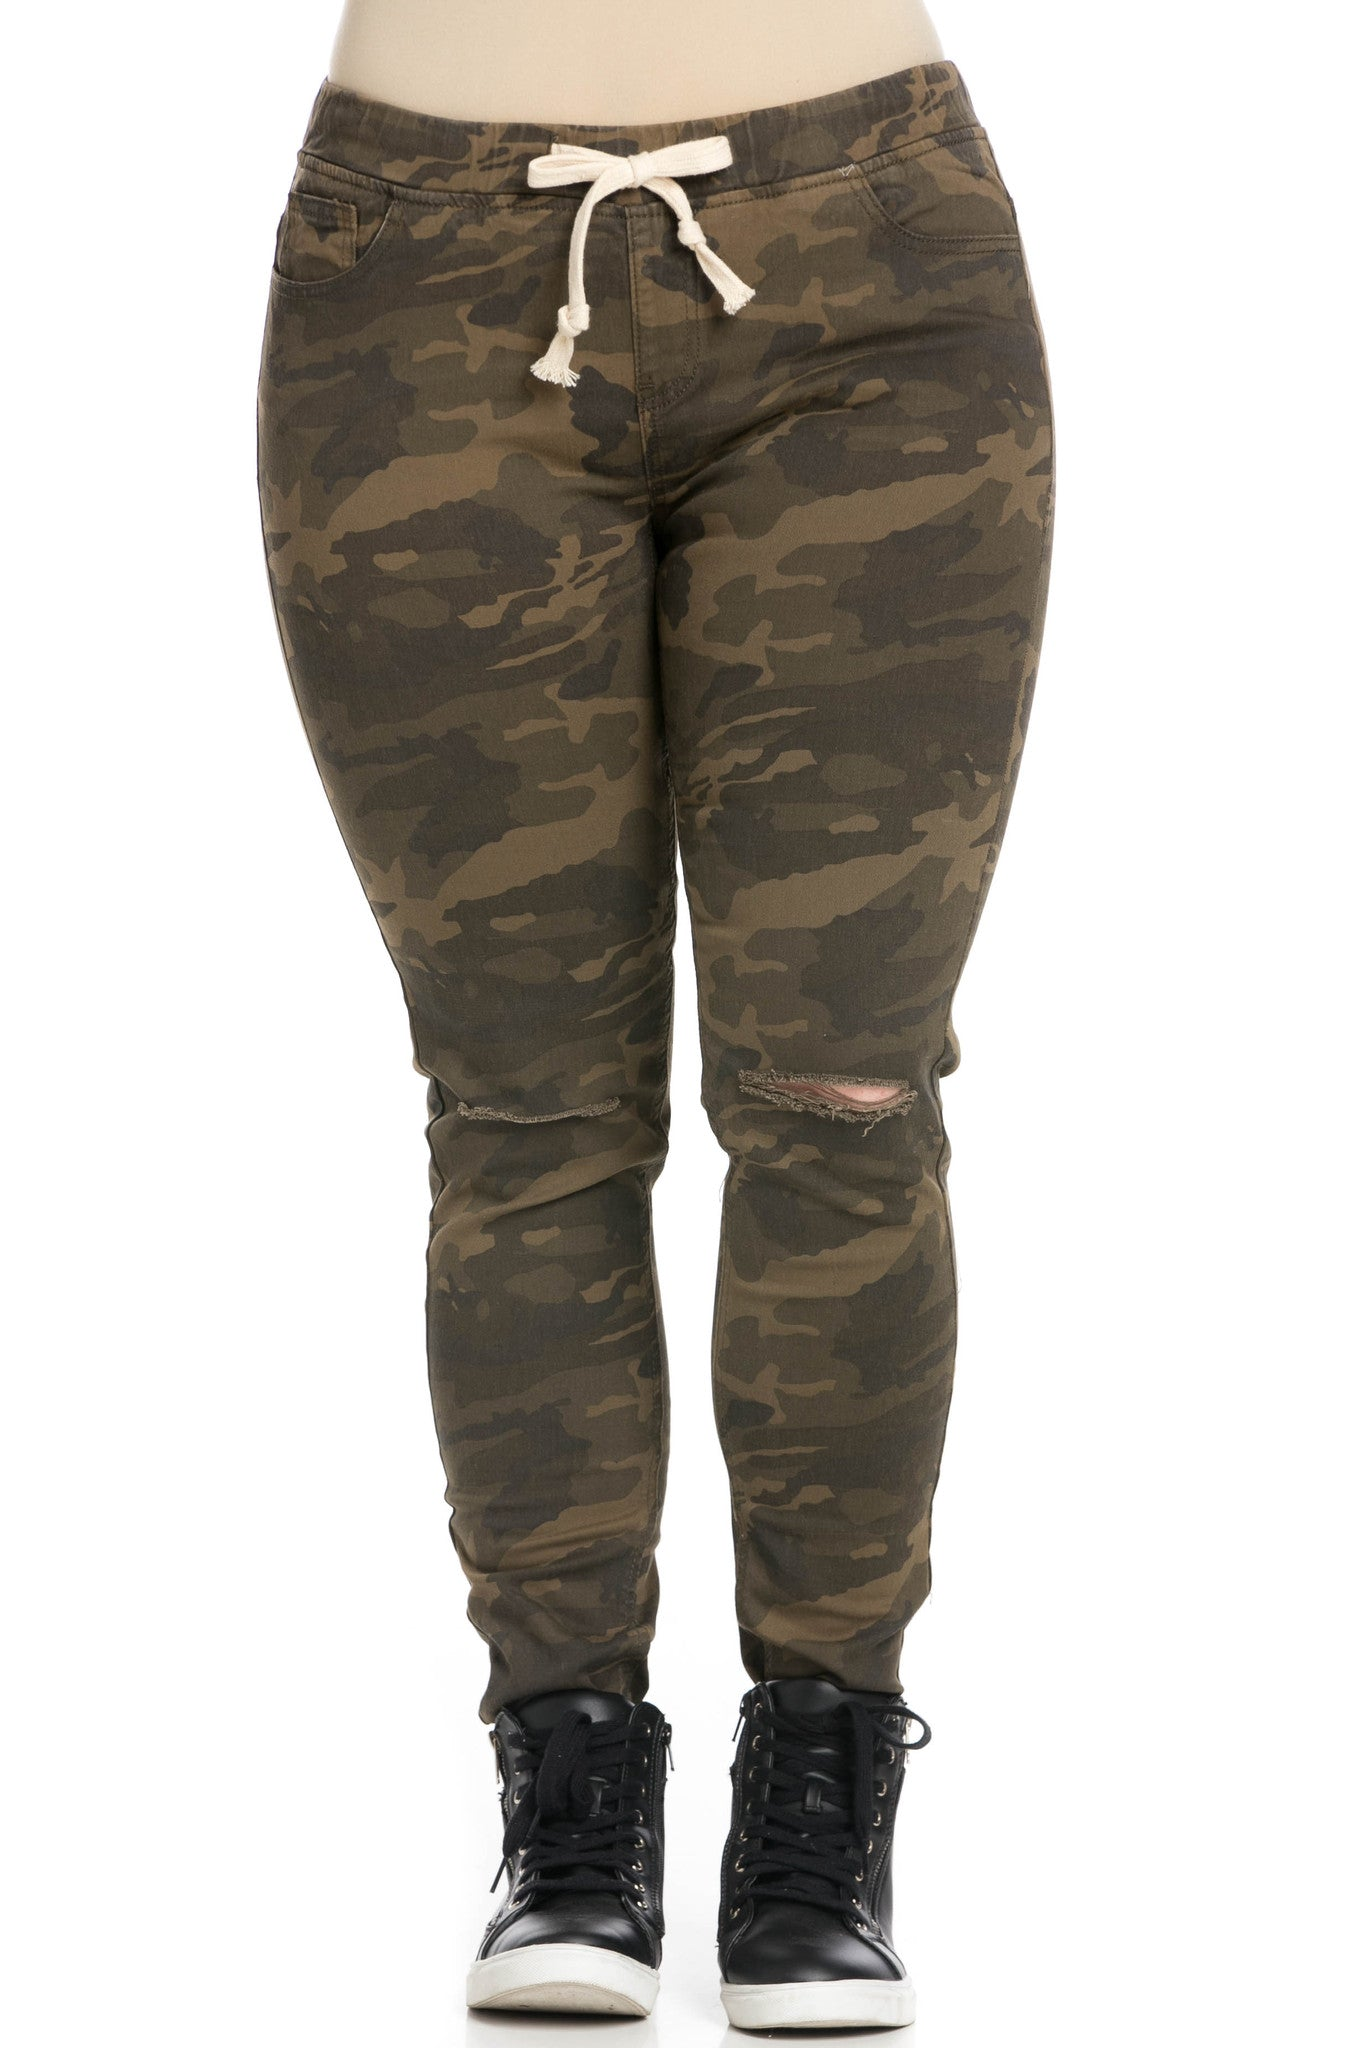 OLIVE GREEN CAMO JOGGERS Camouflage Track Pants Drawstring PLUS SIZE 1X 2X 3X